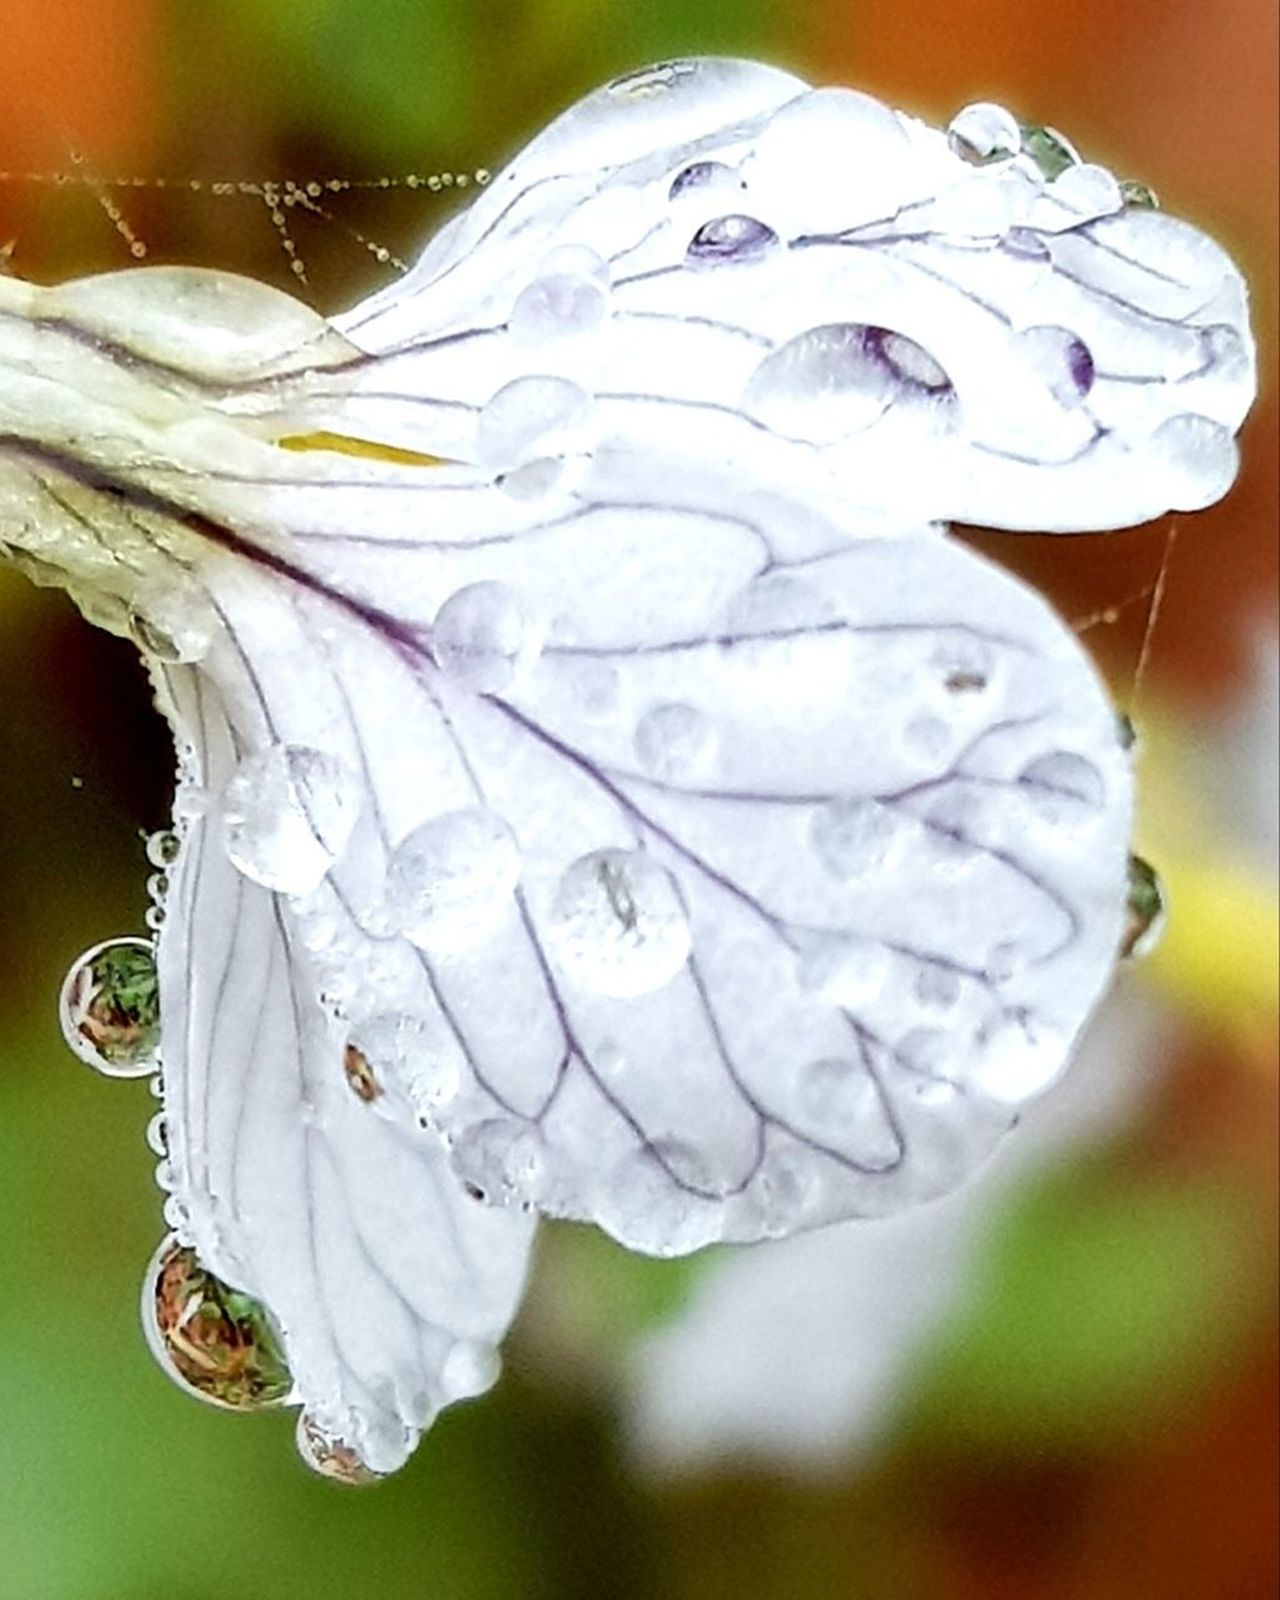 Day Automne Beauty In Nature Outdoors Nature Details Of Nature Natural Pearls Water Pearls Transparent Jewelry Water Plant Textured  Nature Photography Detail Photography Flowers, Nature And Beauty Refletction Reflet Pearl